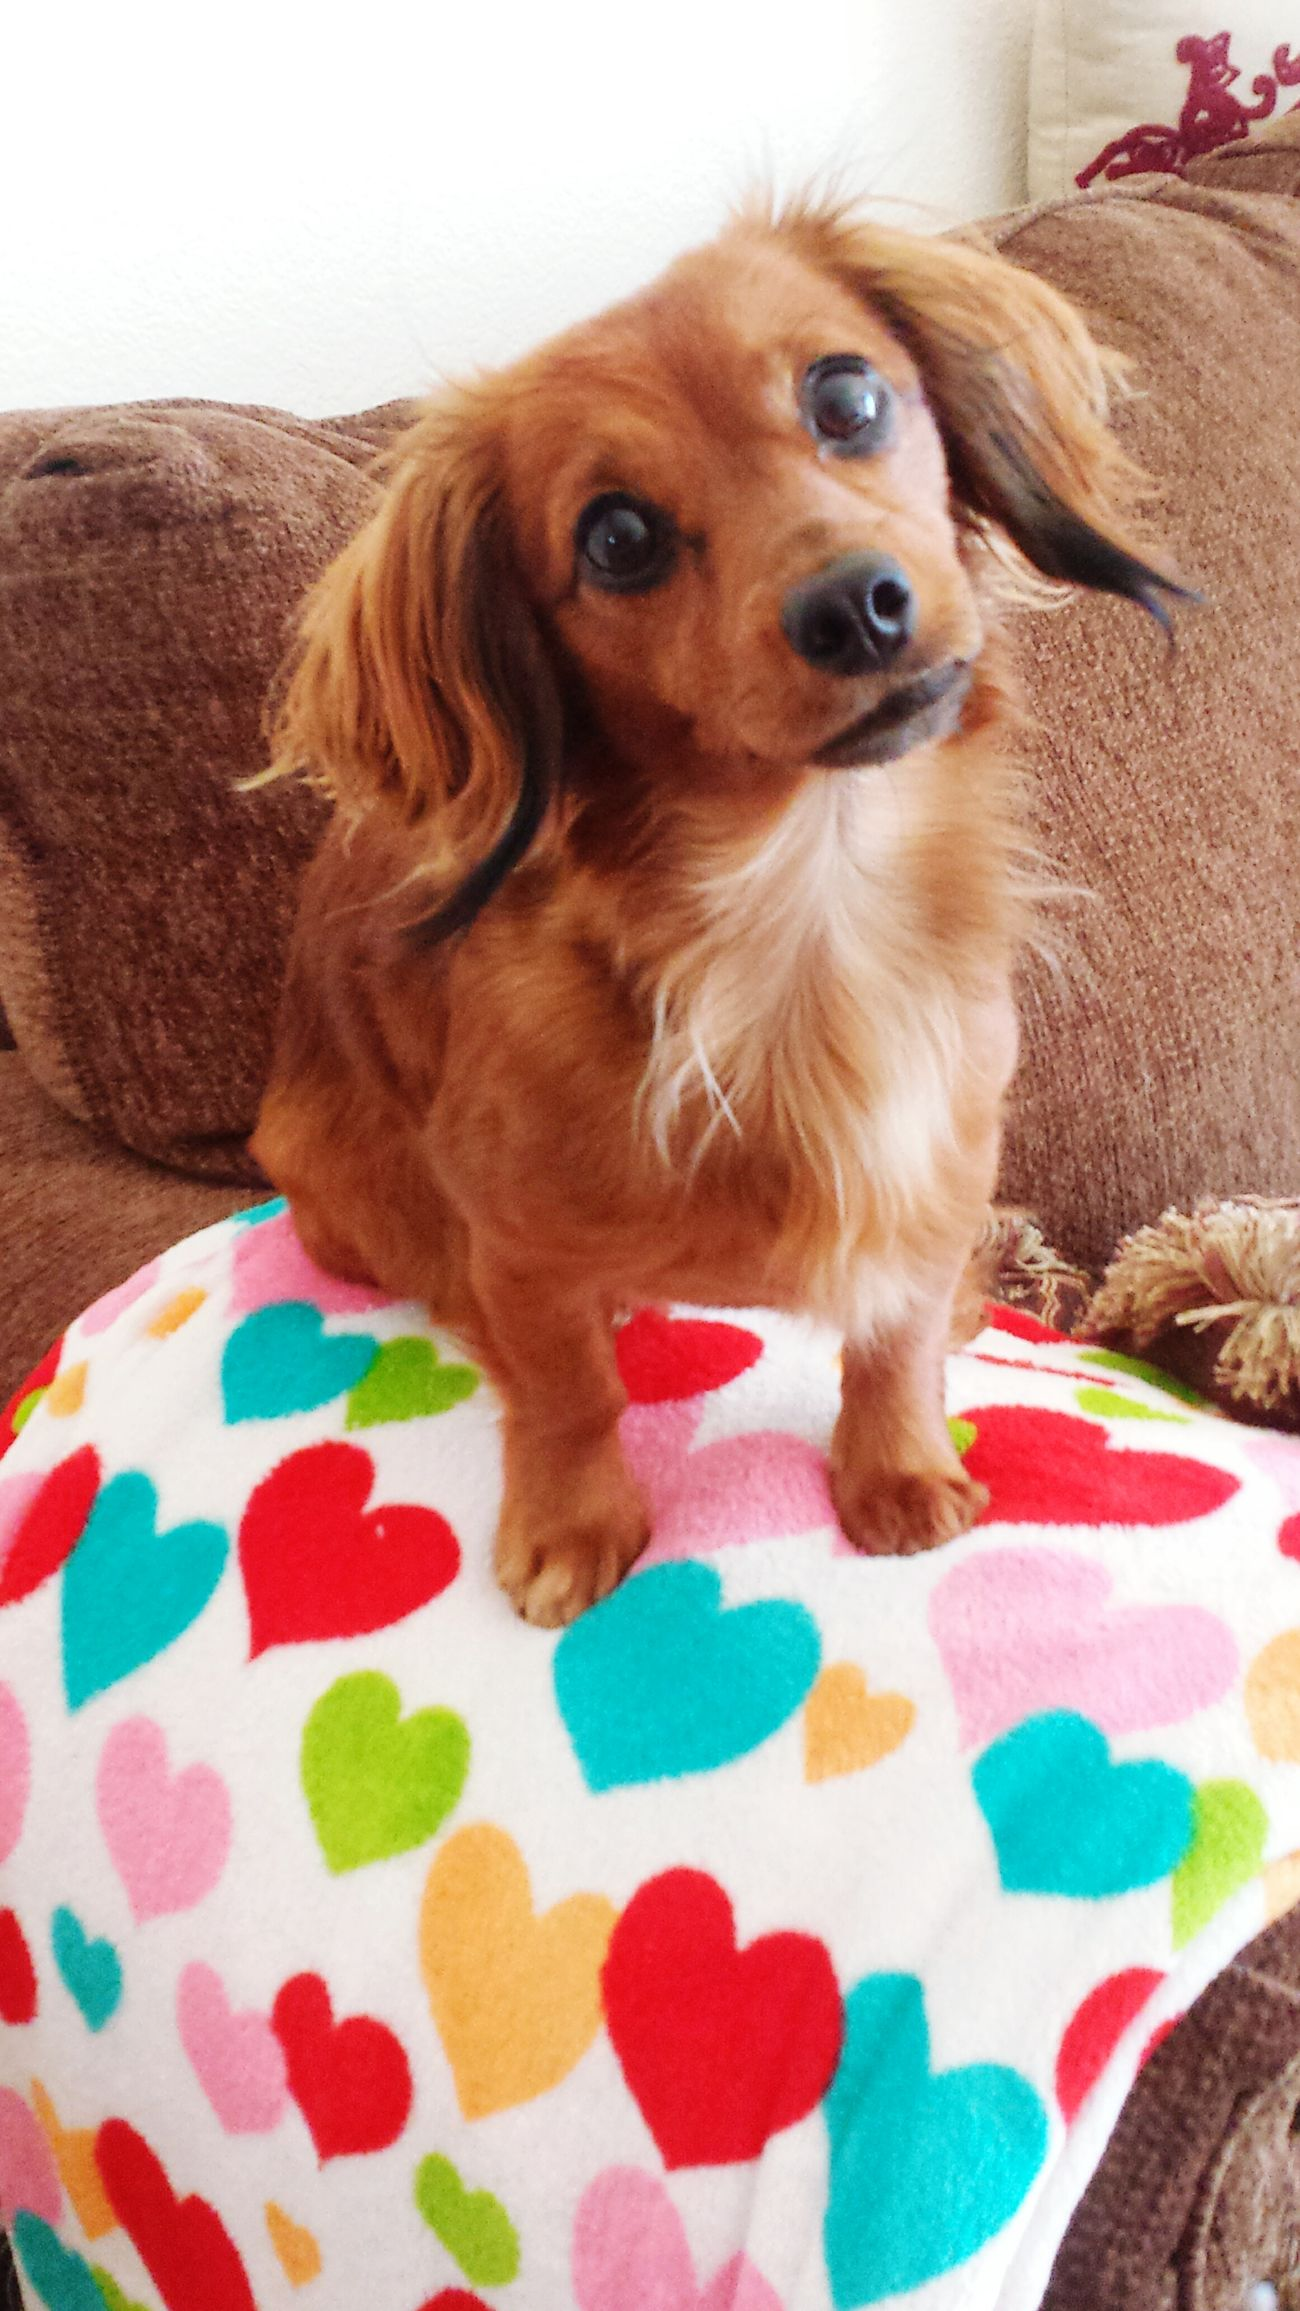 Babygirl Sasha  Daschund Tiny 3yearsold Besutiful_hair Brown Bigbrowneyes Super_cute Dogs Family Hearts Love Couch_life Natural Hair